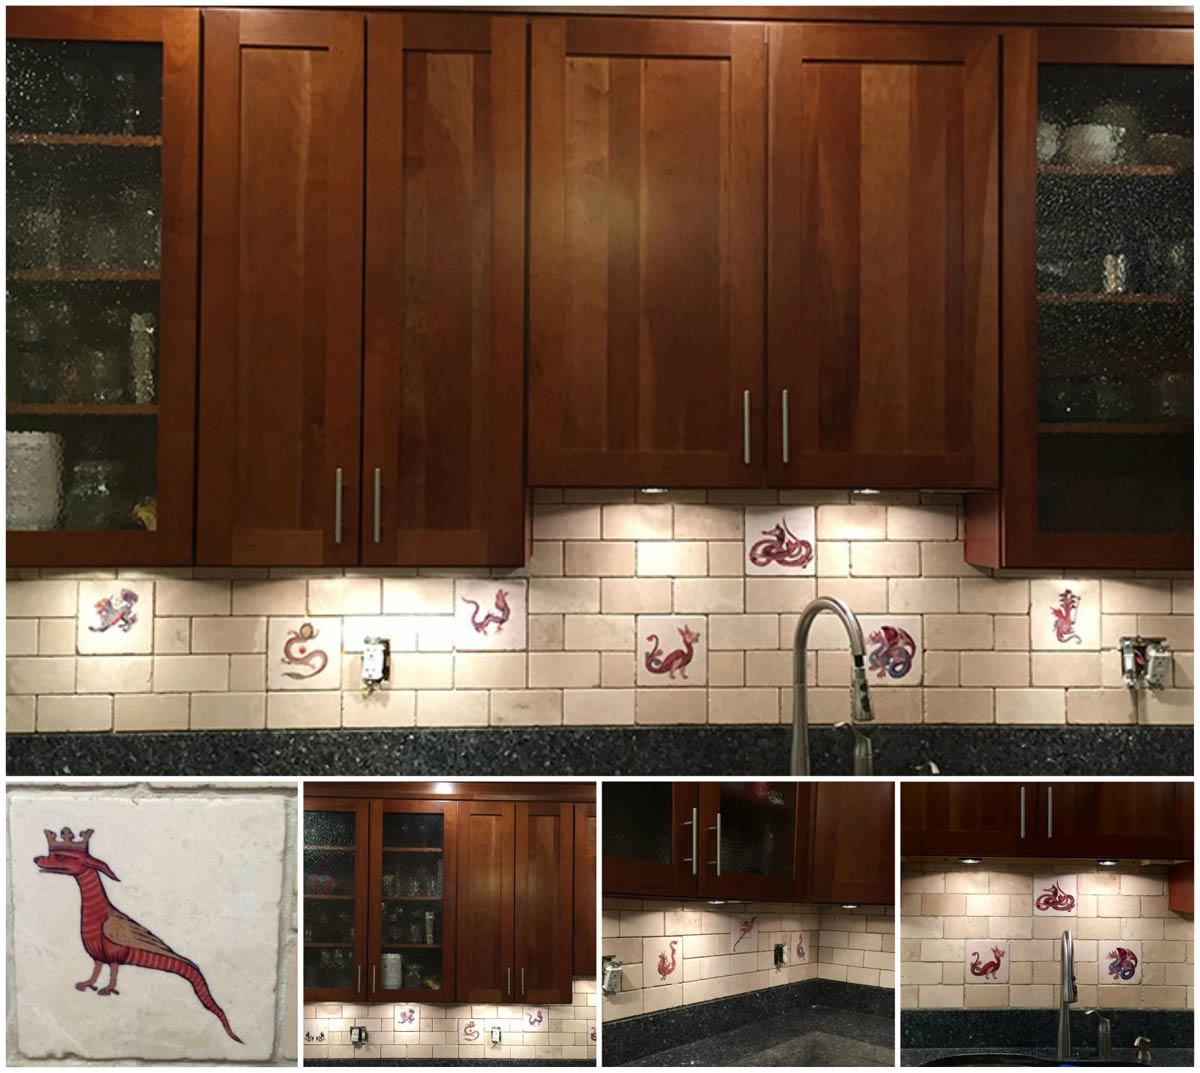 Medieval Bestiary themed kitchen backsplash in Washington, DC, featuring bestiary dragons and tumbled marble subway tile